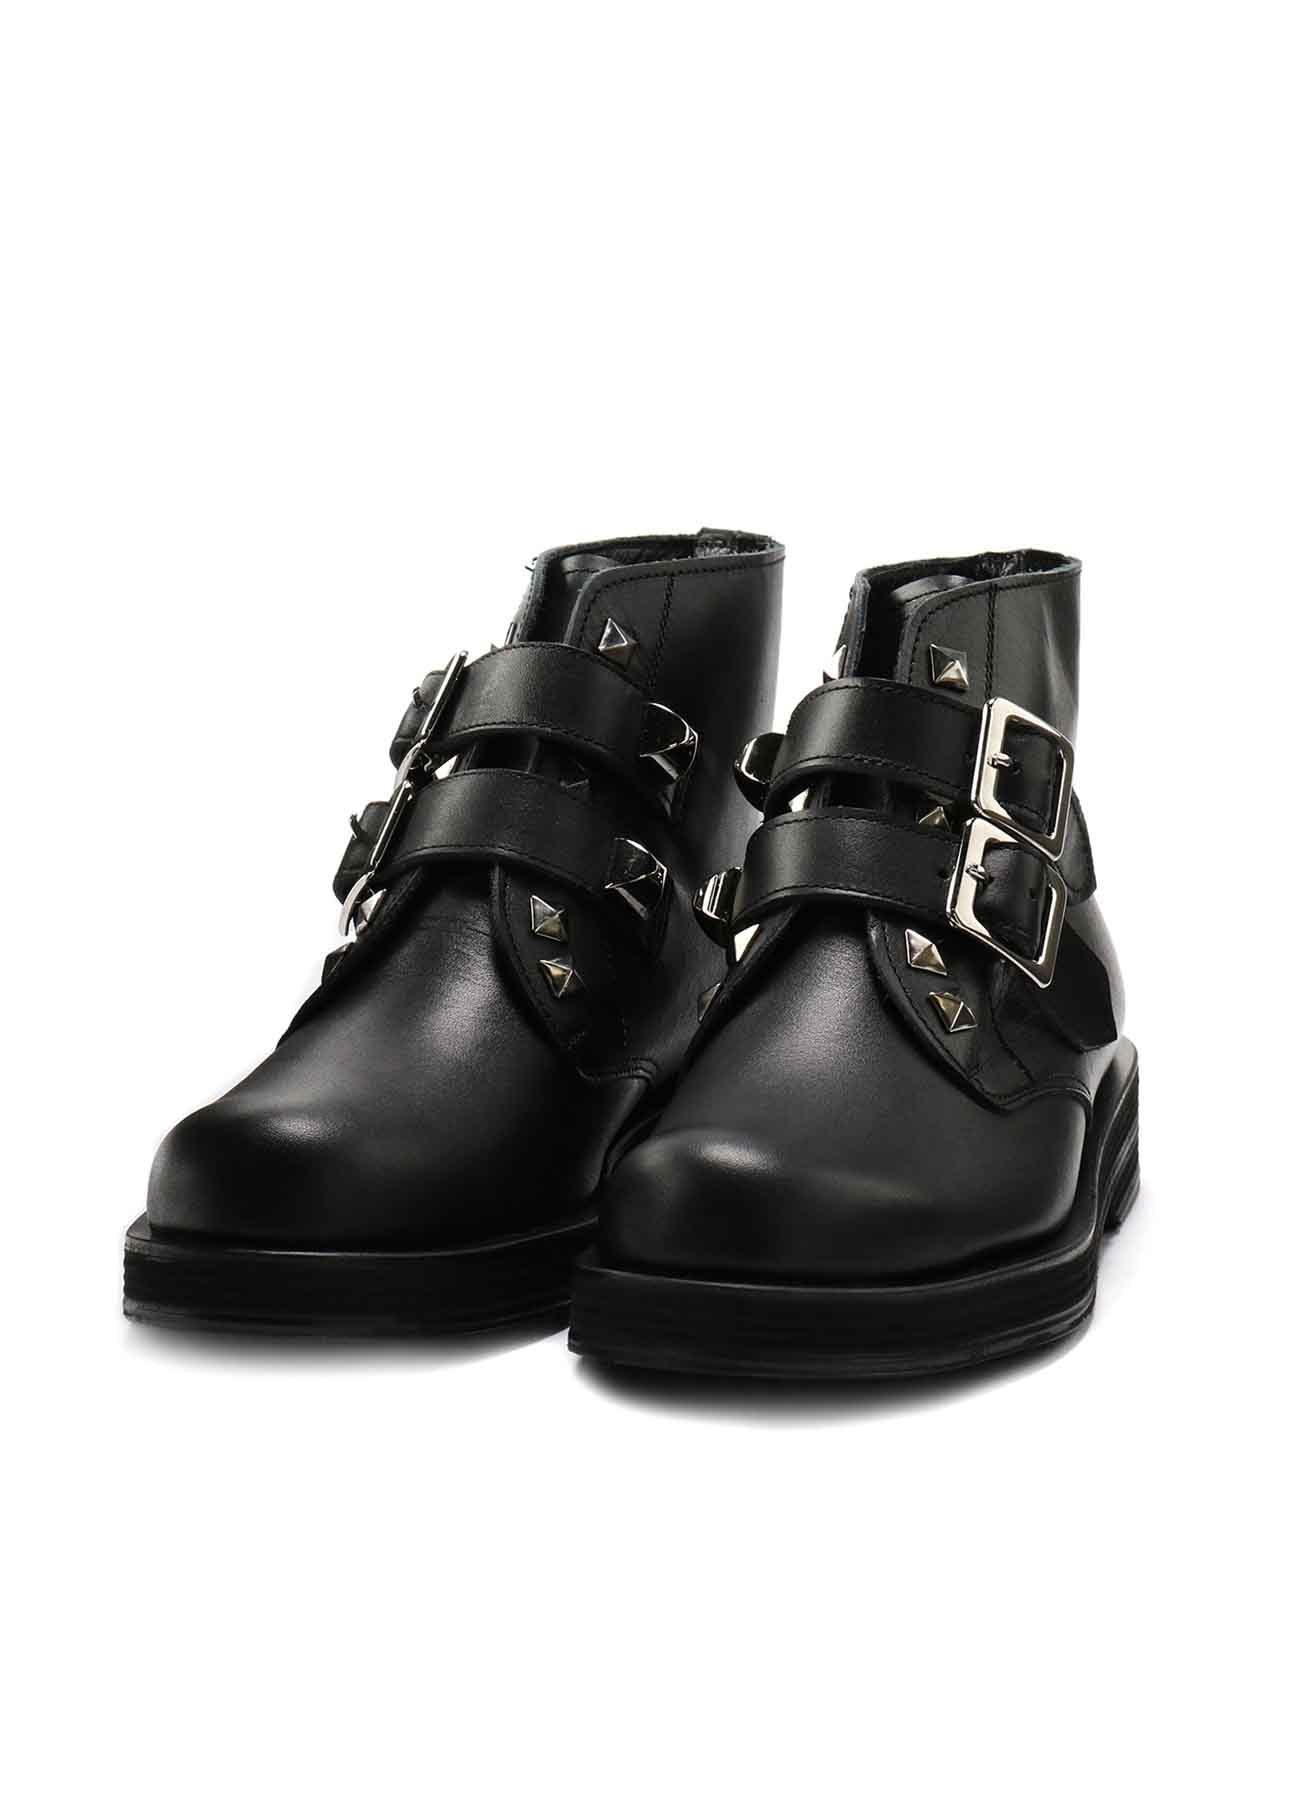 SMOOTH LEATHER STUDS STRAP BOOTS